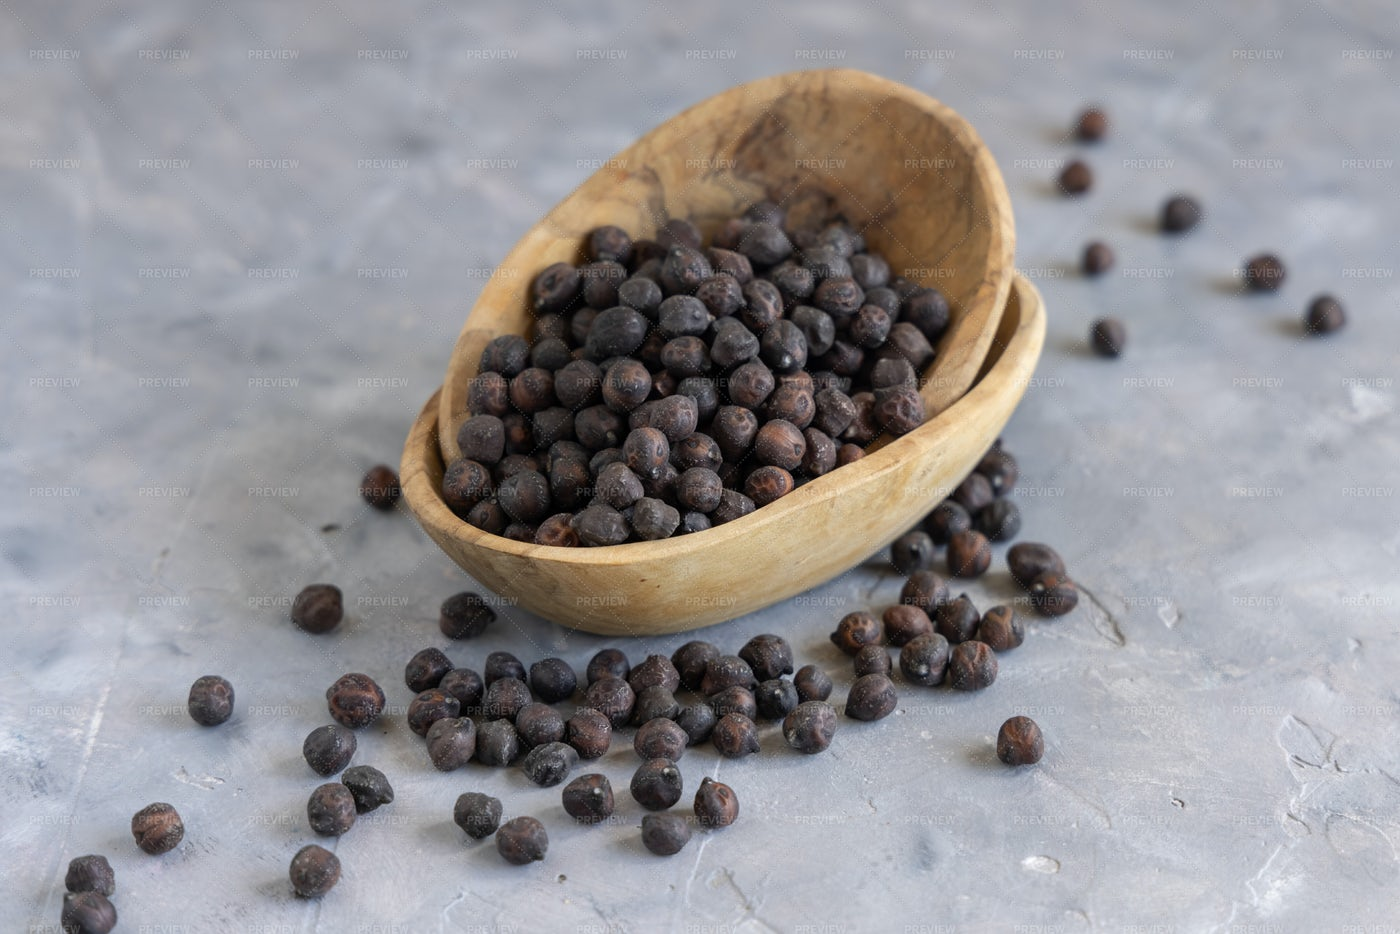 Wooden Bowl Of Black Chickpea: Stock Photos